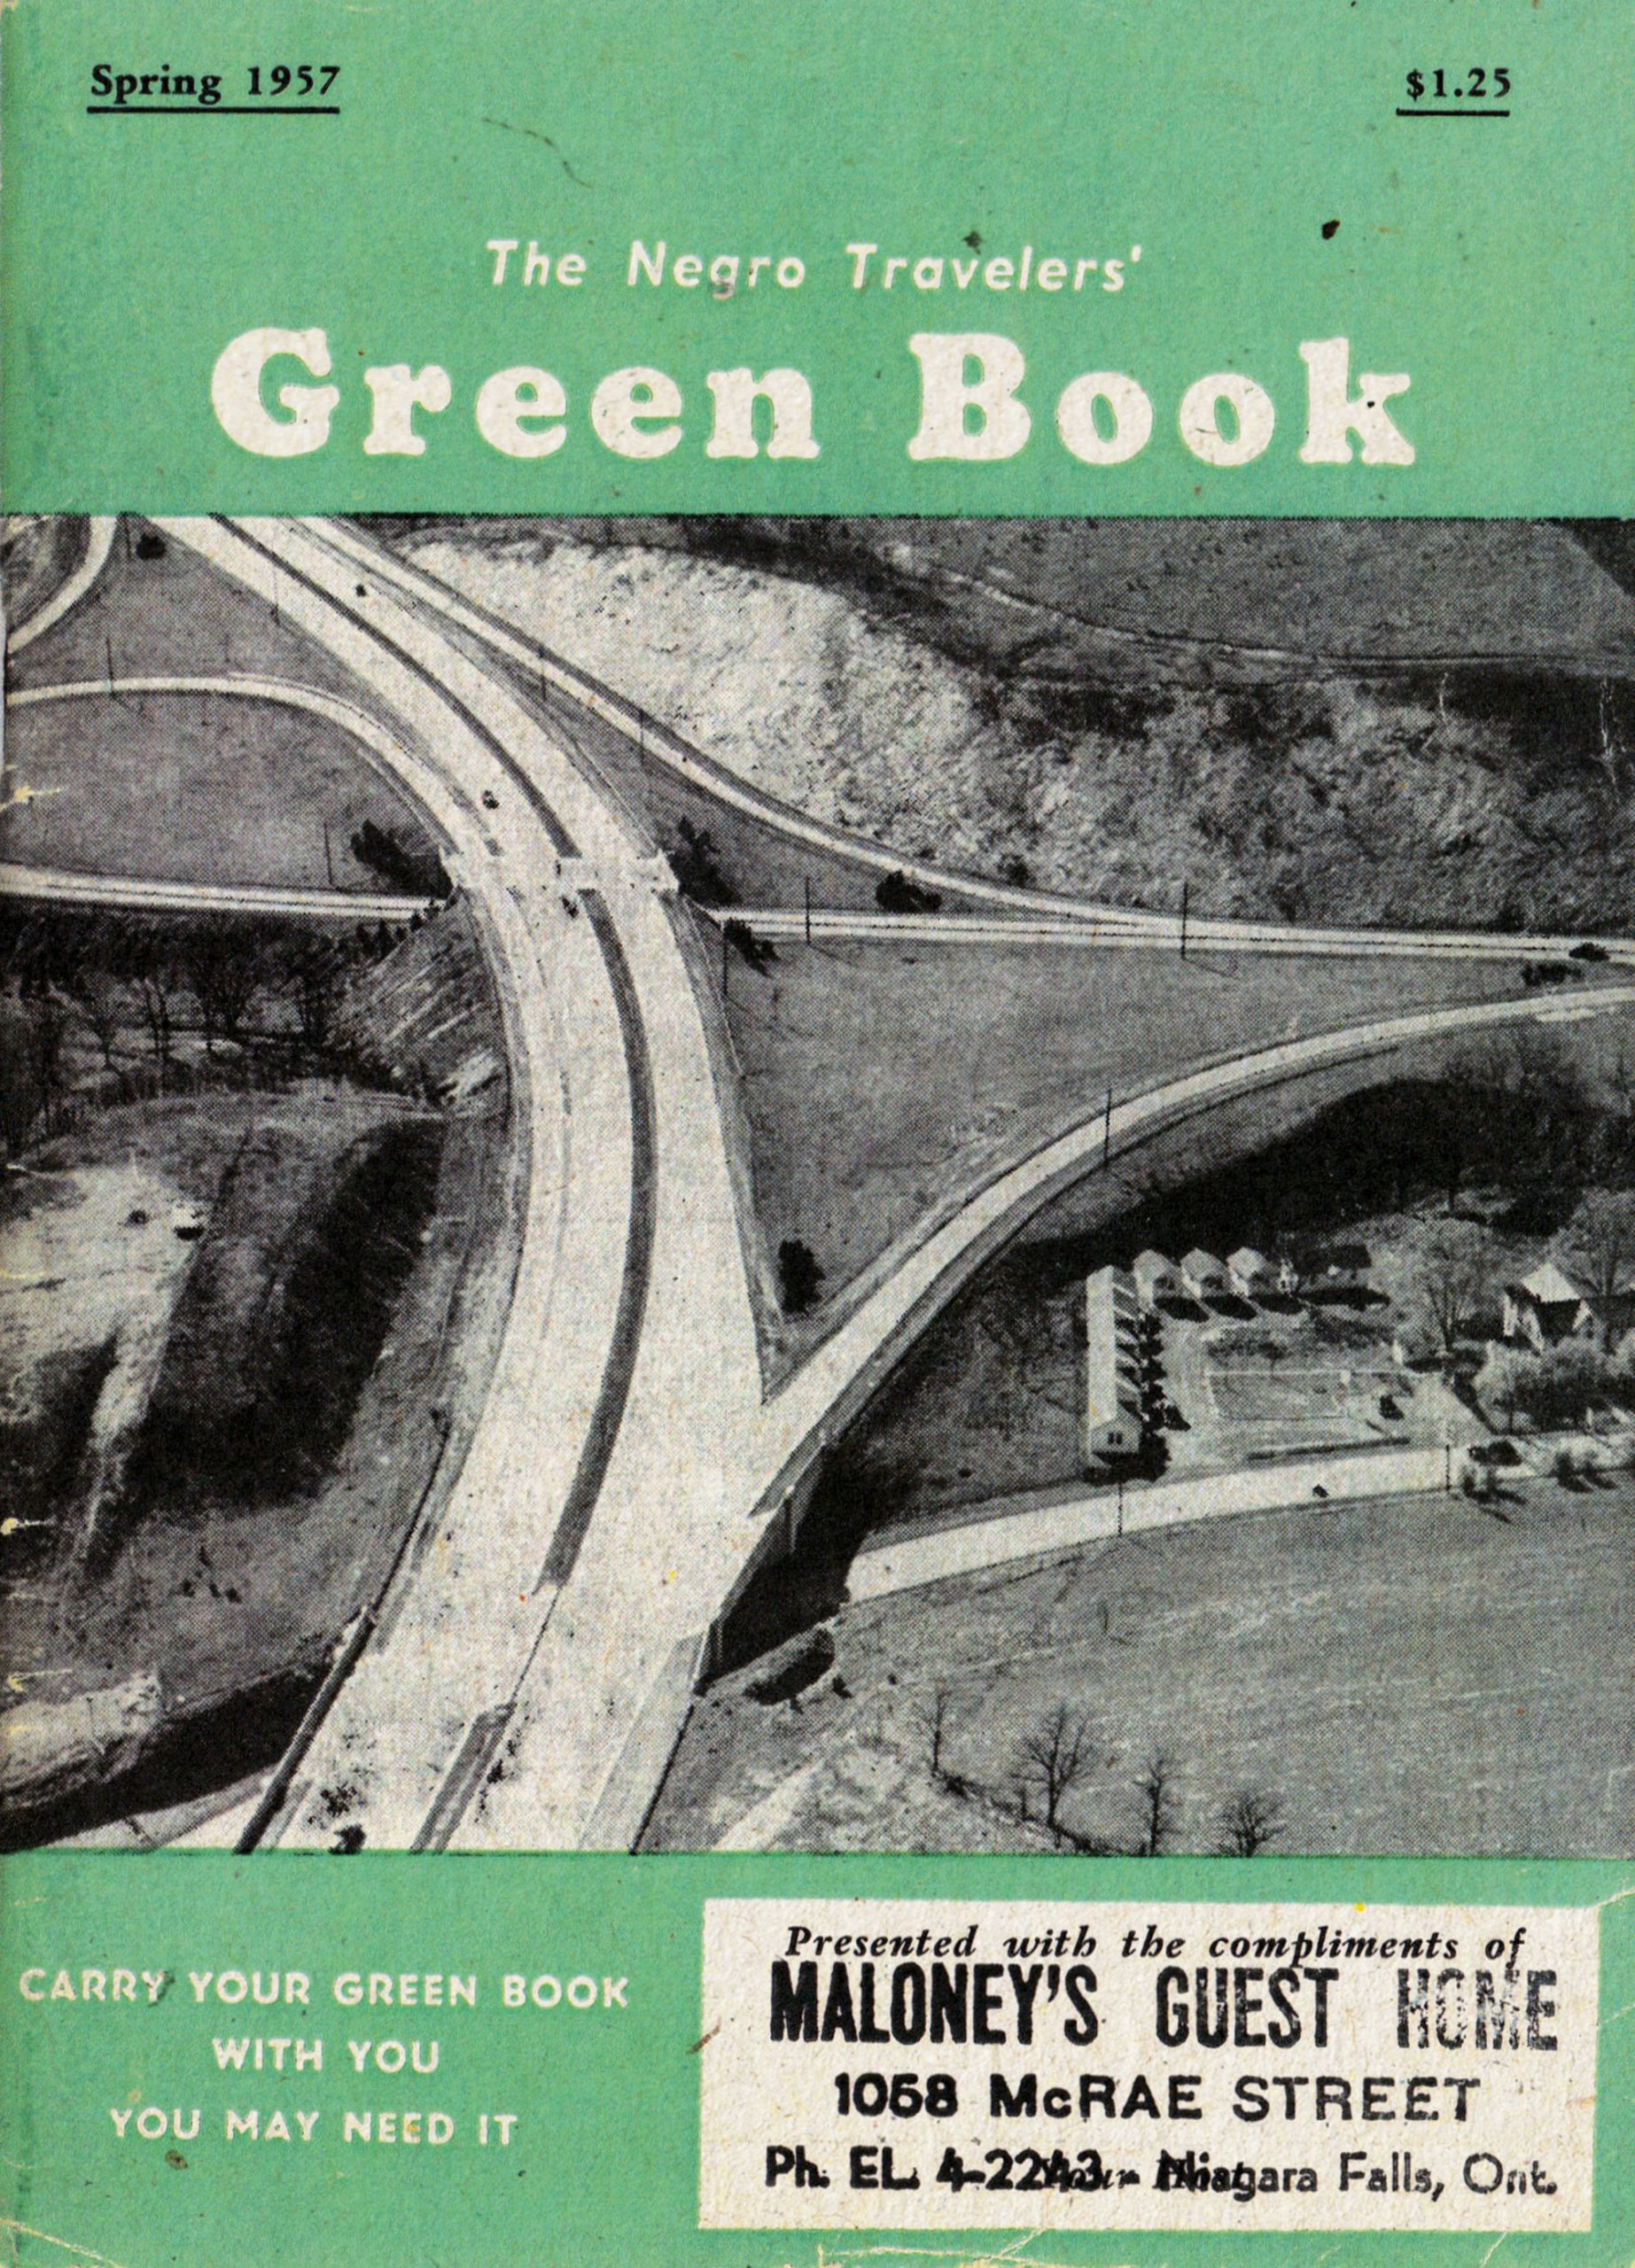 the 1957 edition of The Negro Travelers' Green Book; Photo courtesy Lyell Henry